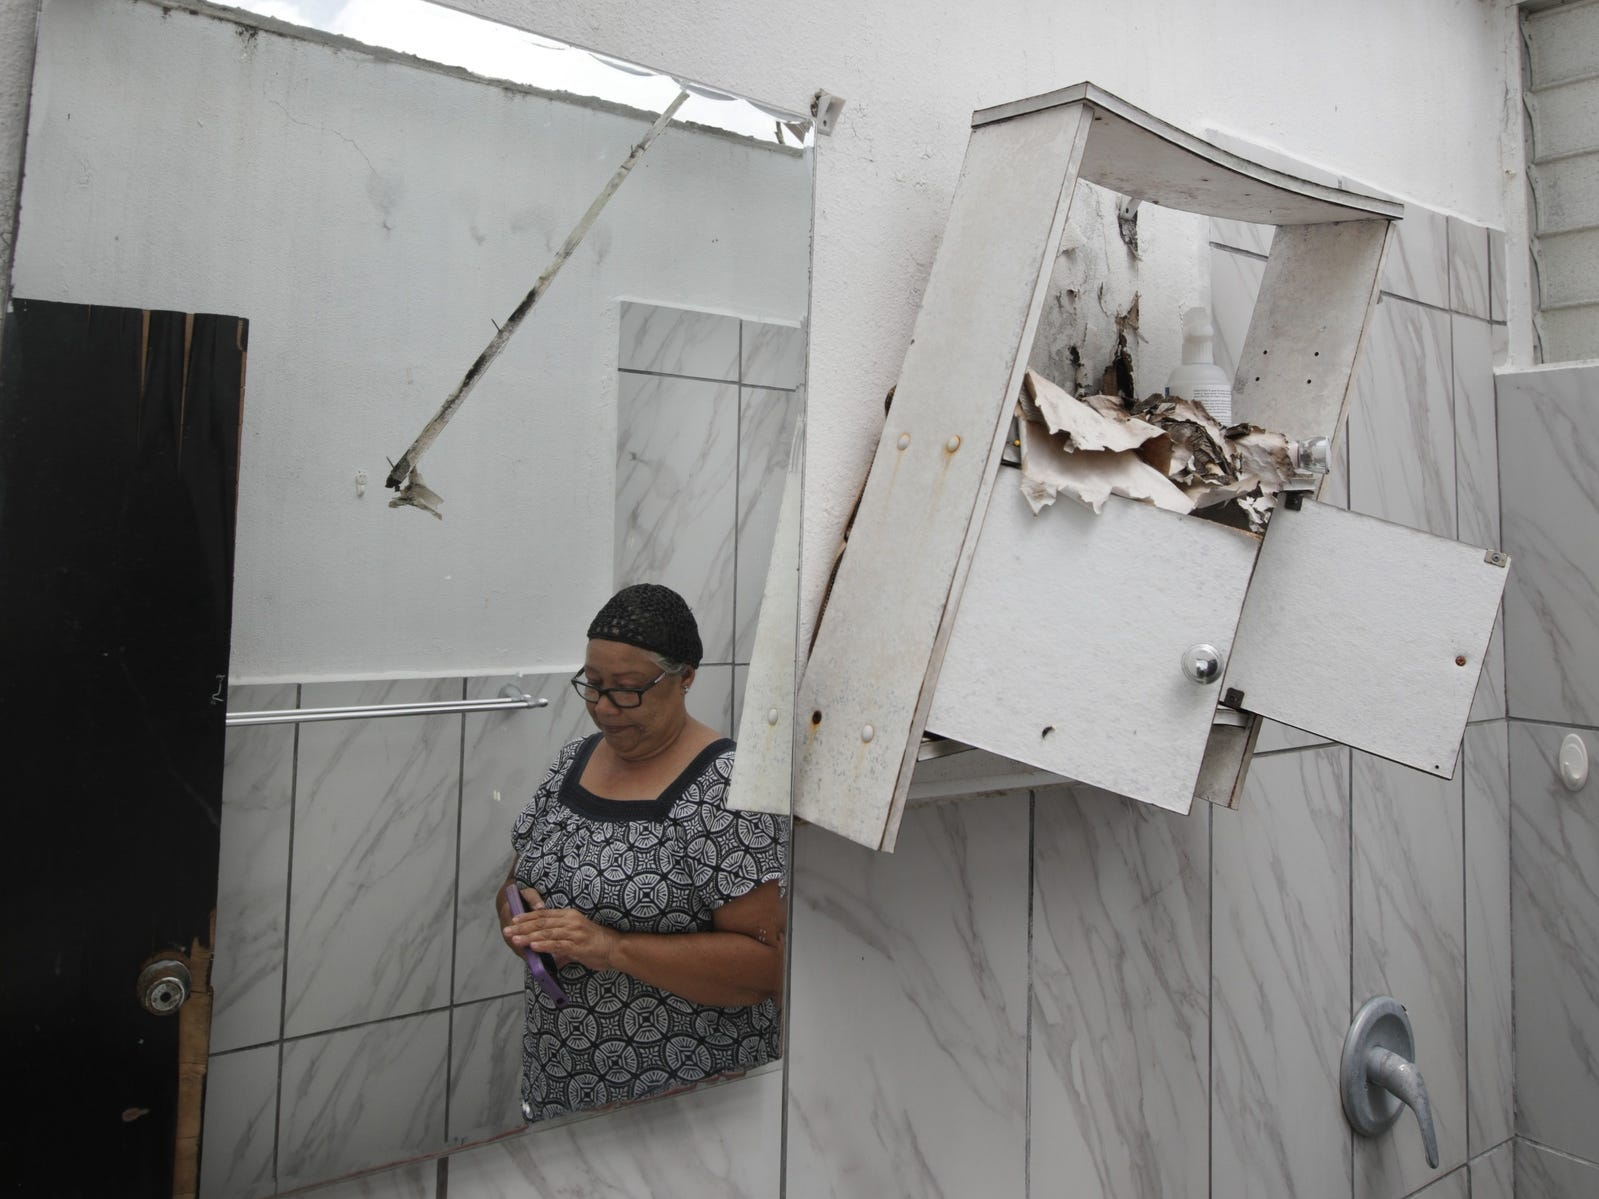 Only the walls of Carmen Rivera's bathroom stand after her home was devastated by Hurricane Maria in Humacao, Puerto Rico.